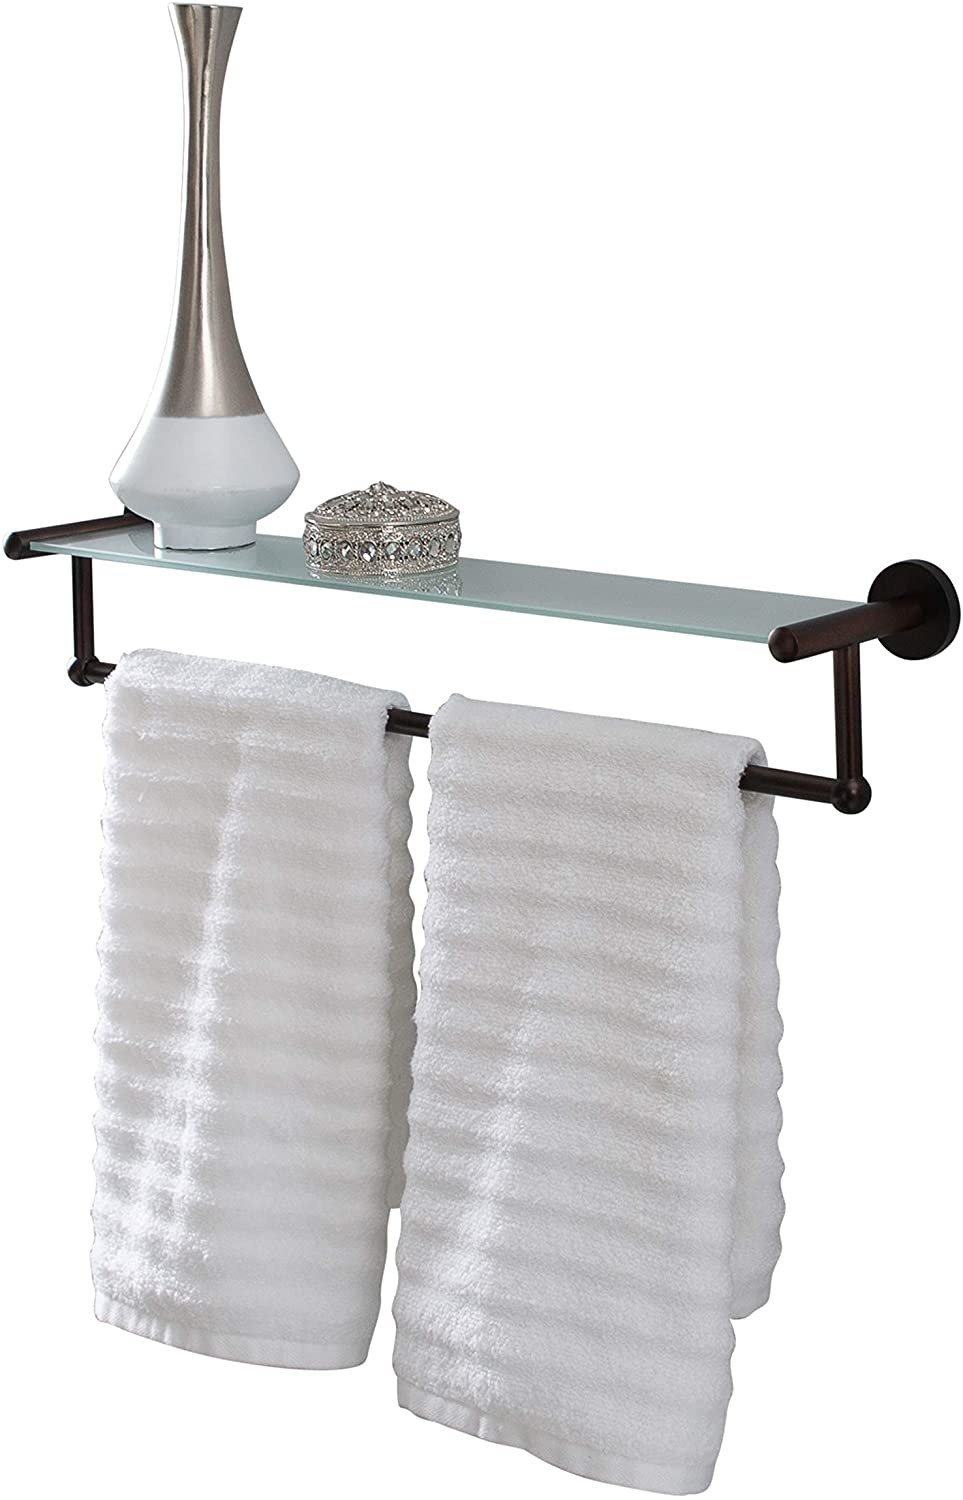 The shelf with a towel, vase and trinket displayed on it